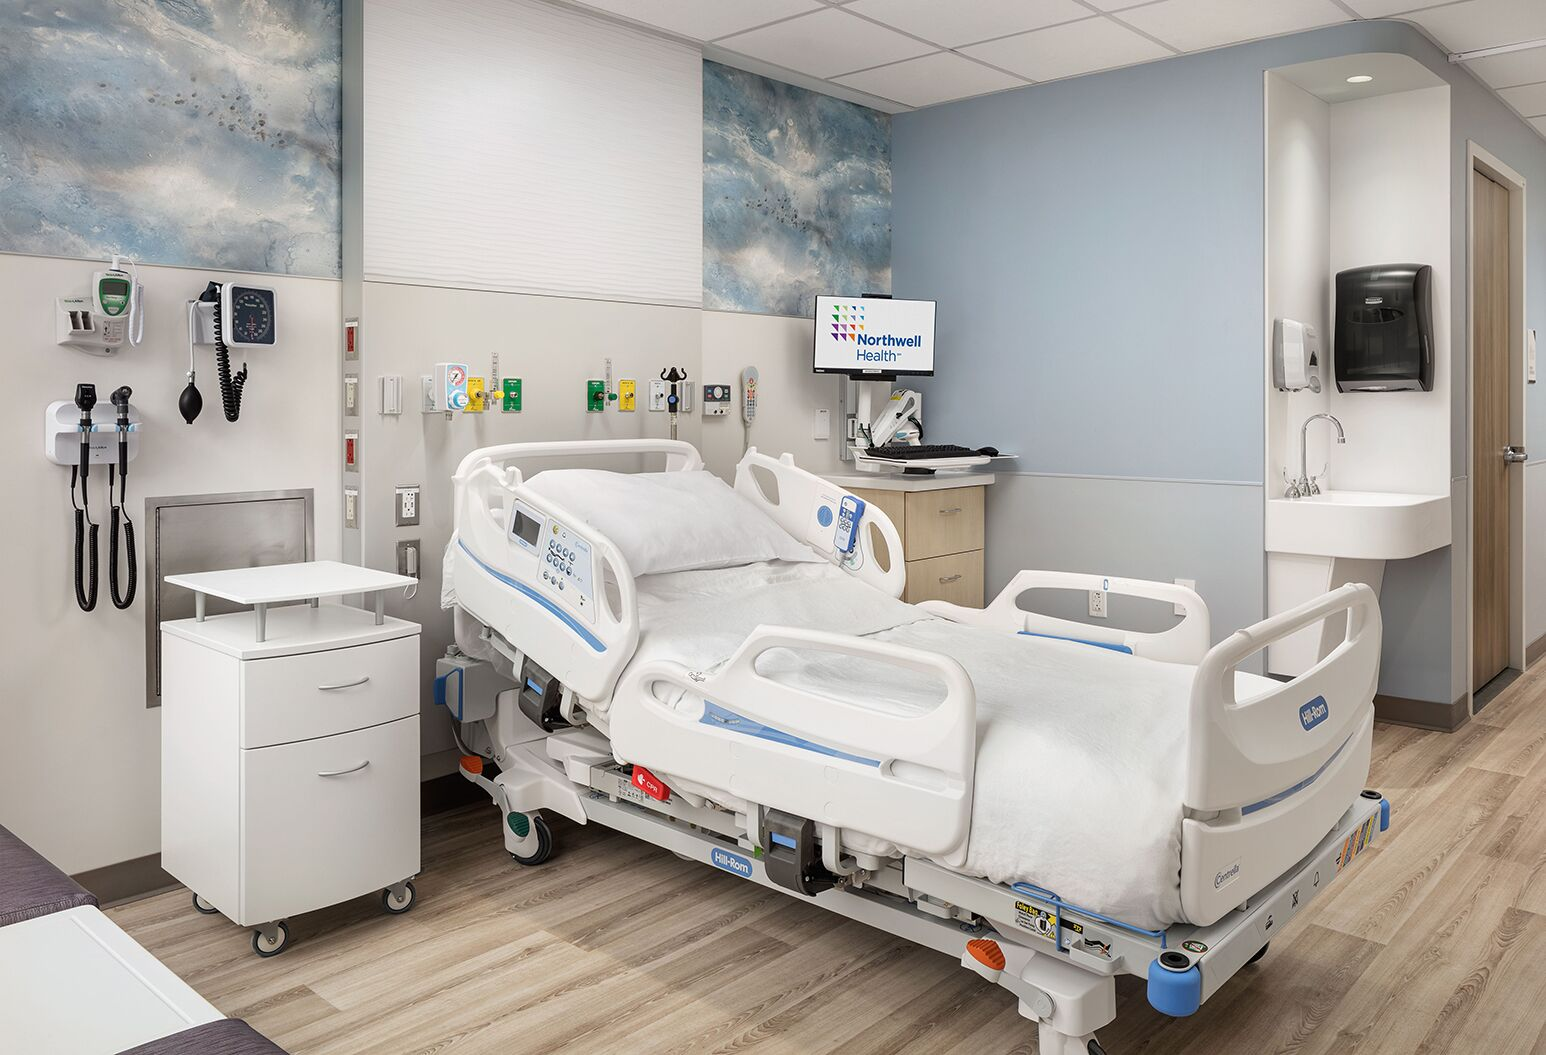 Southside Hospital has created a private setting where joint replacement patients can recover and receive care after surgery.